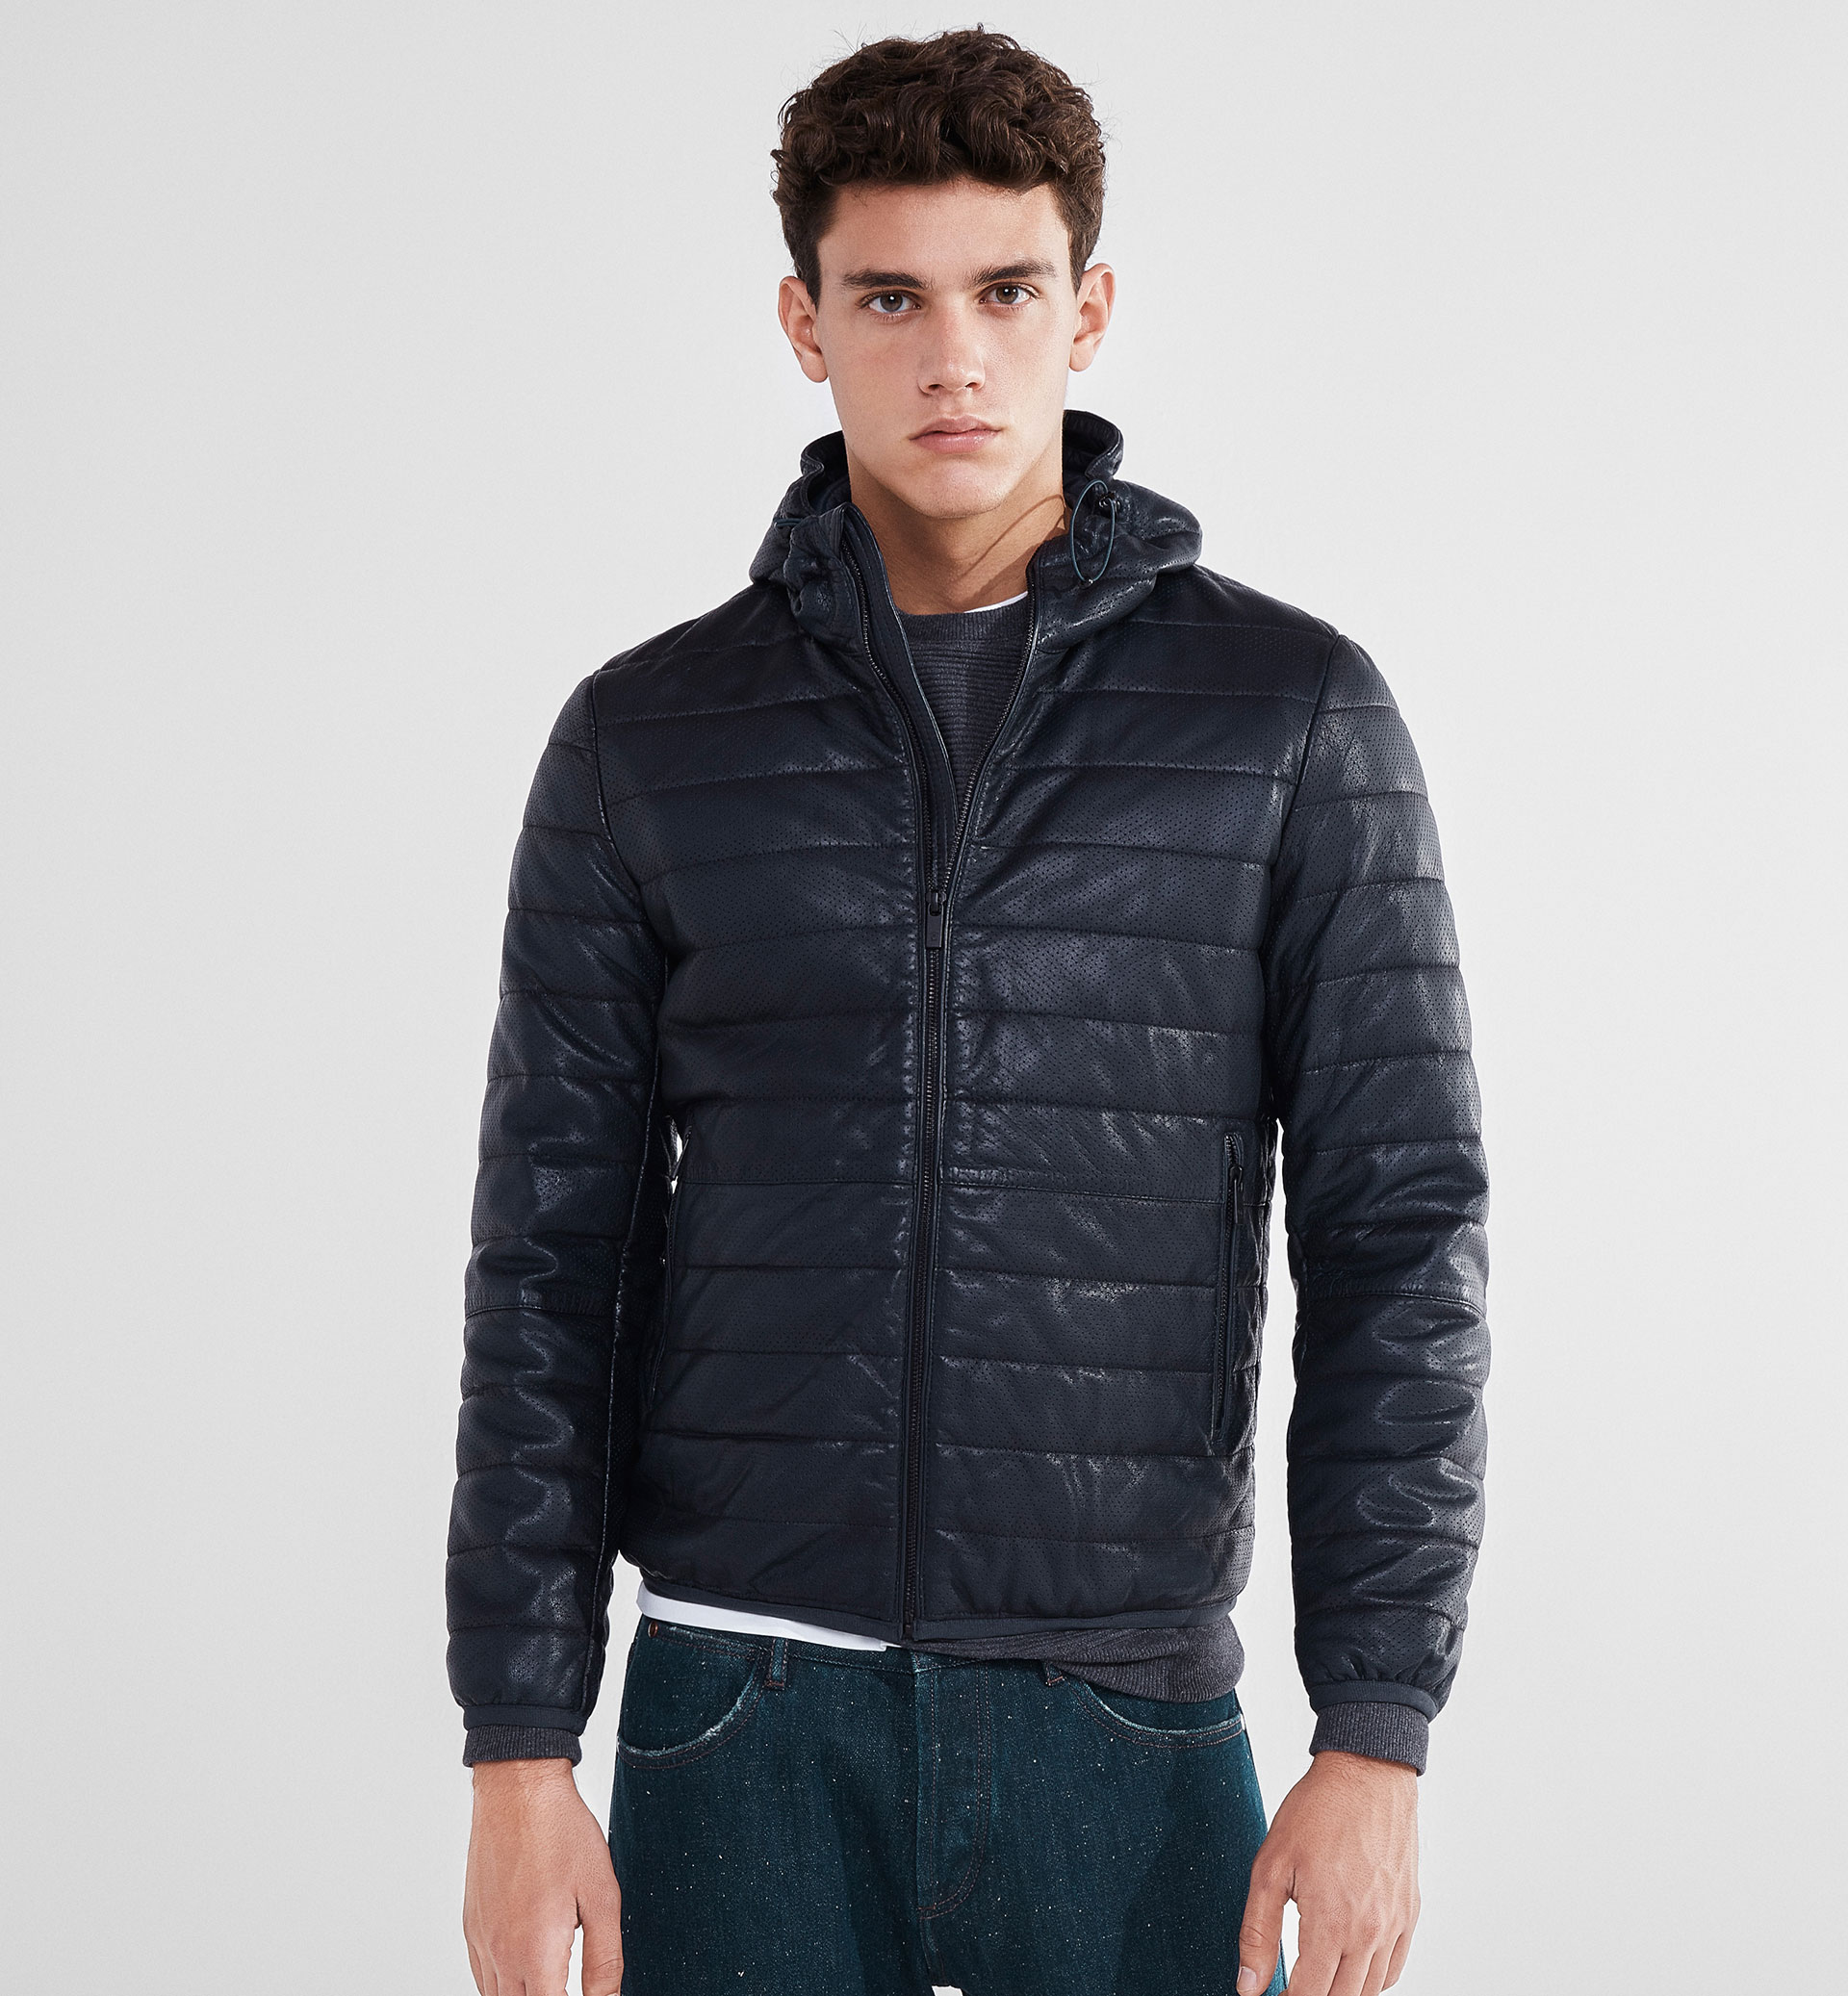 SOFT PERFORATED NAPPA JACKET